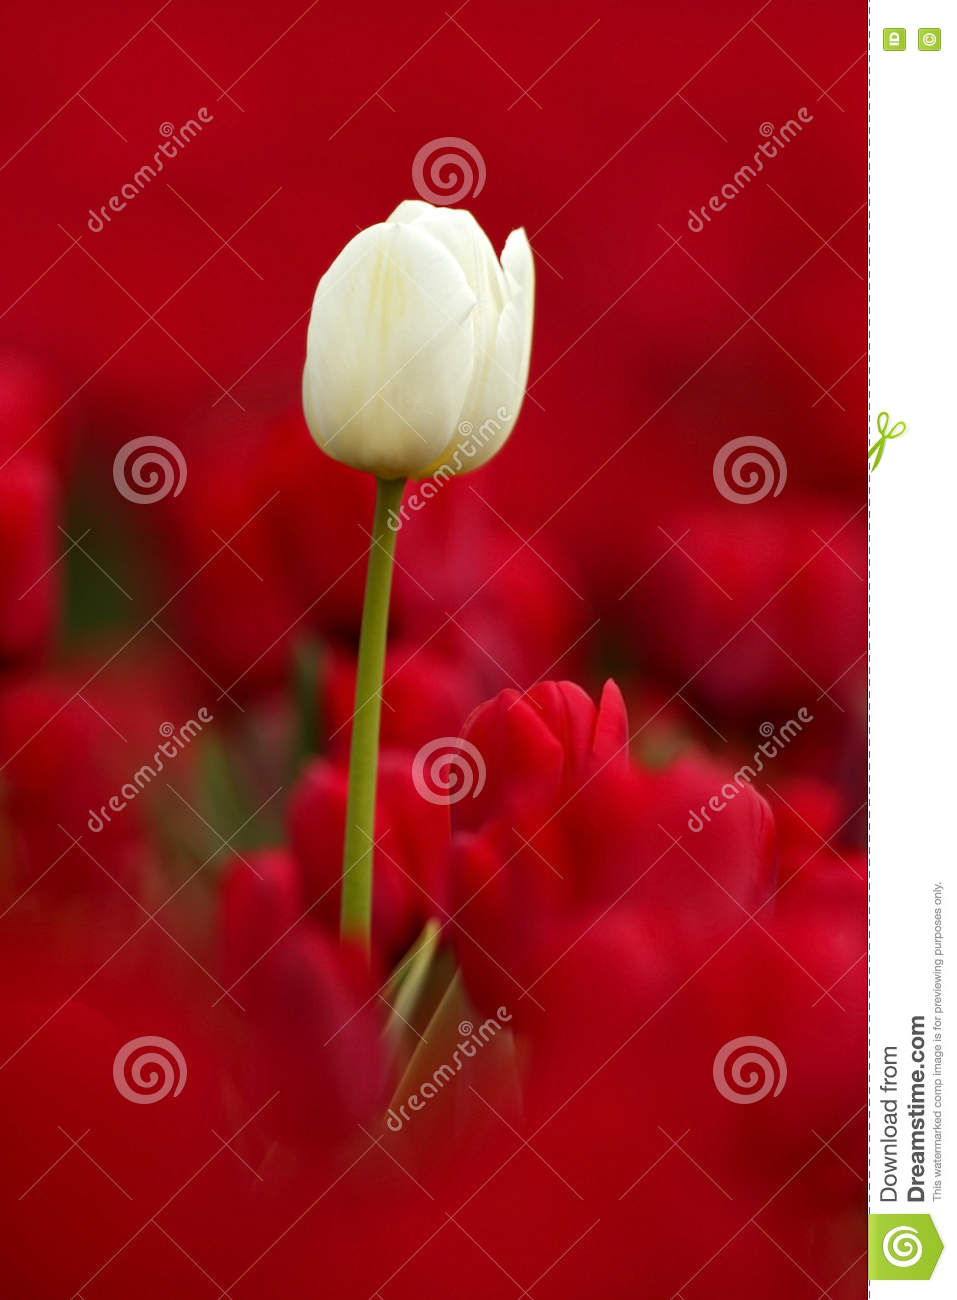 White tulip bloom, red beautiful tulips field in spring time with sunlight, floral background, garden scene, Holland, Netherlands